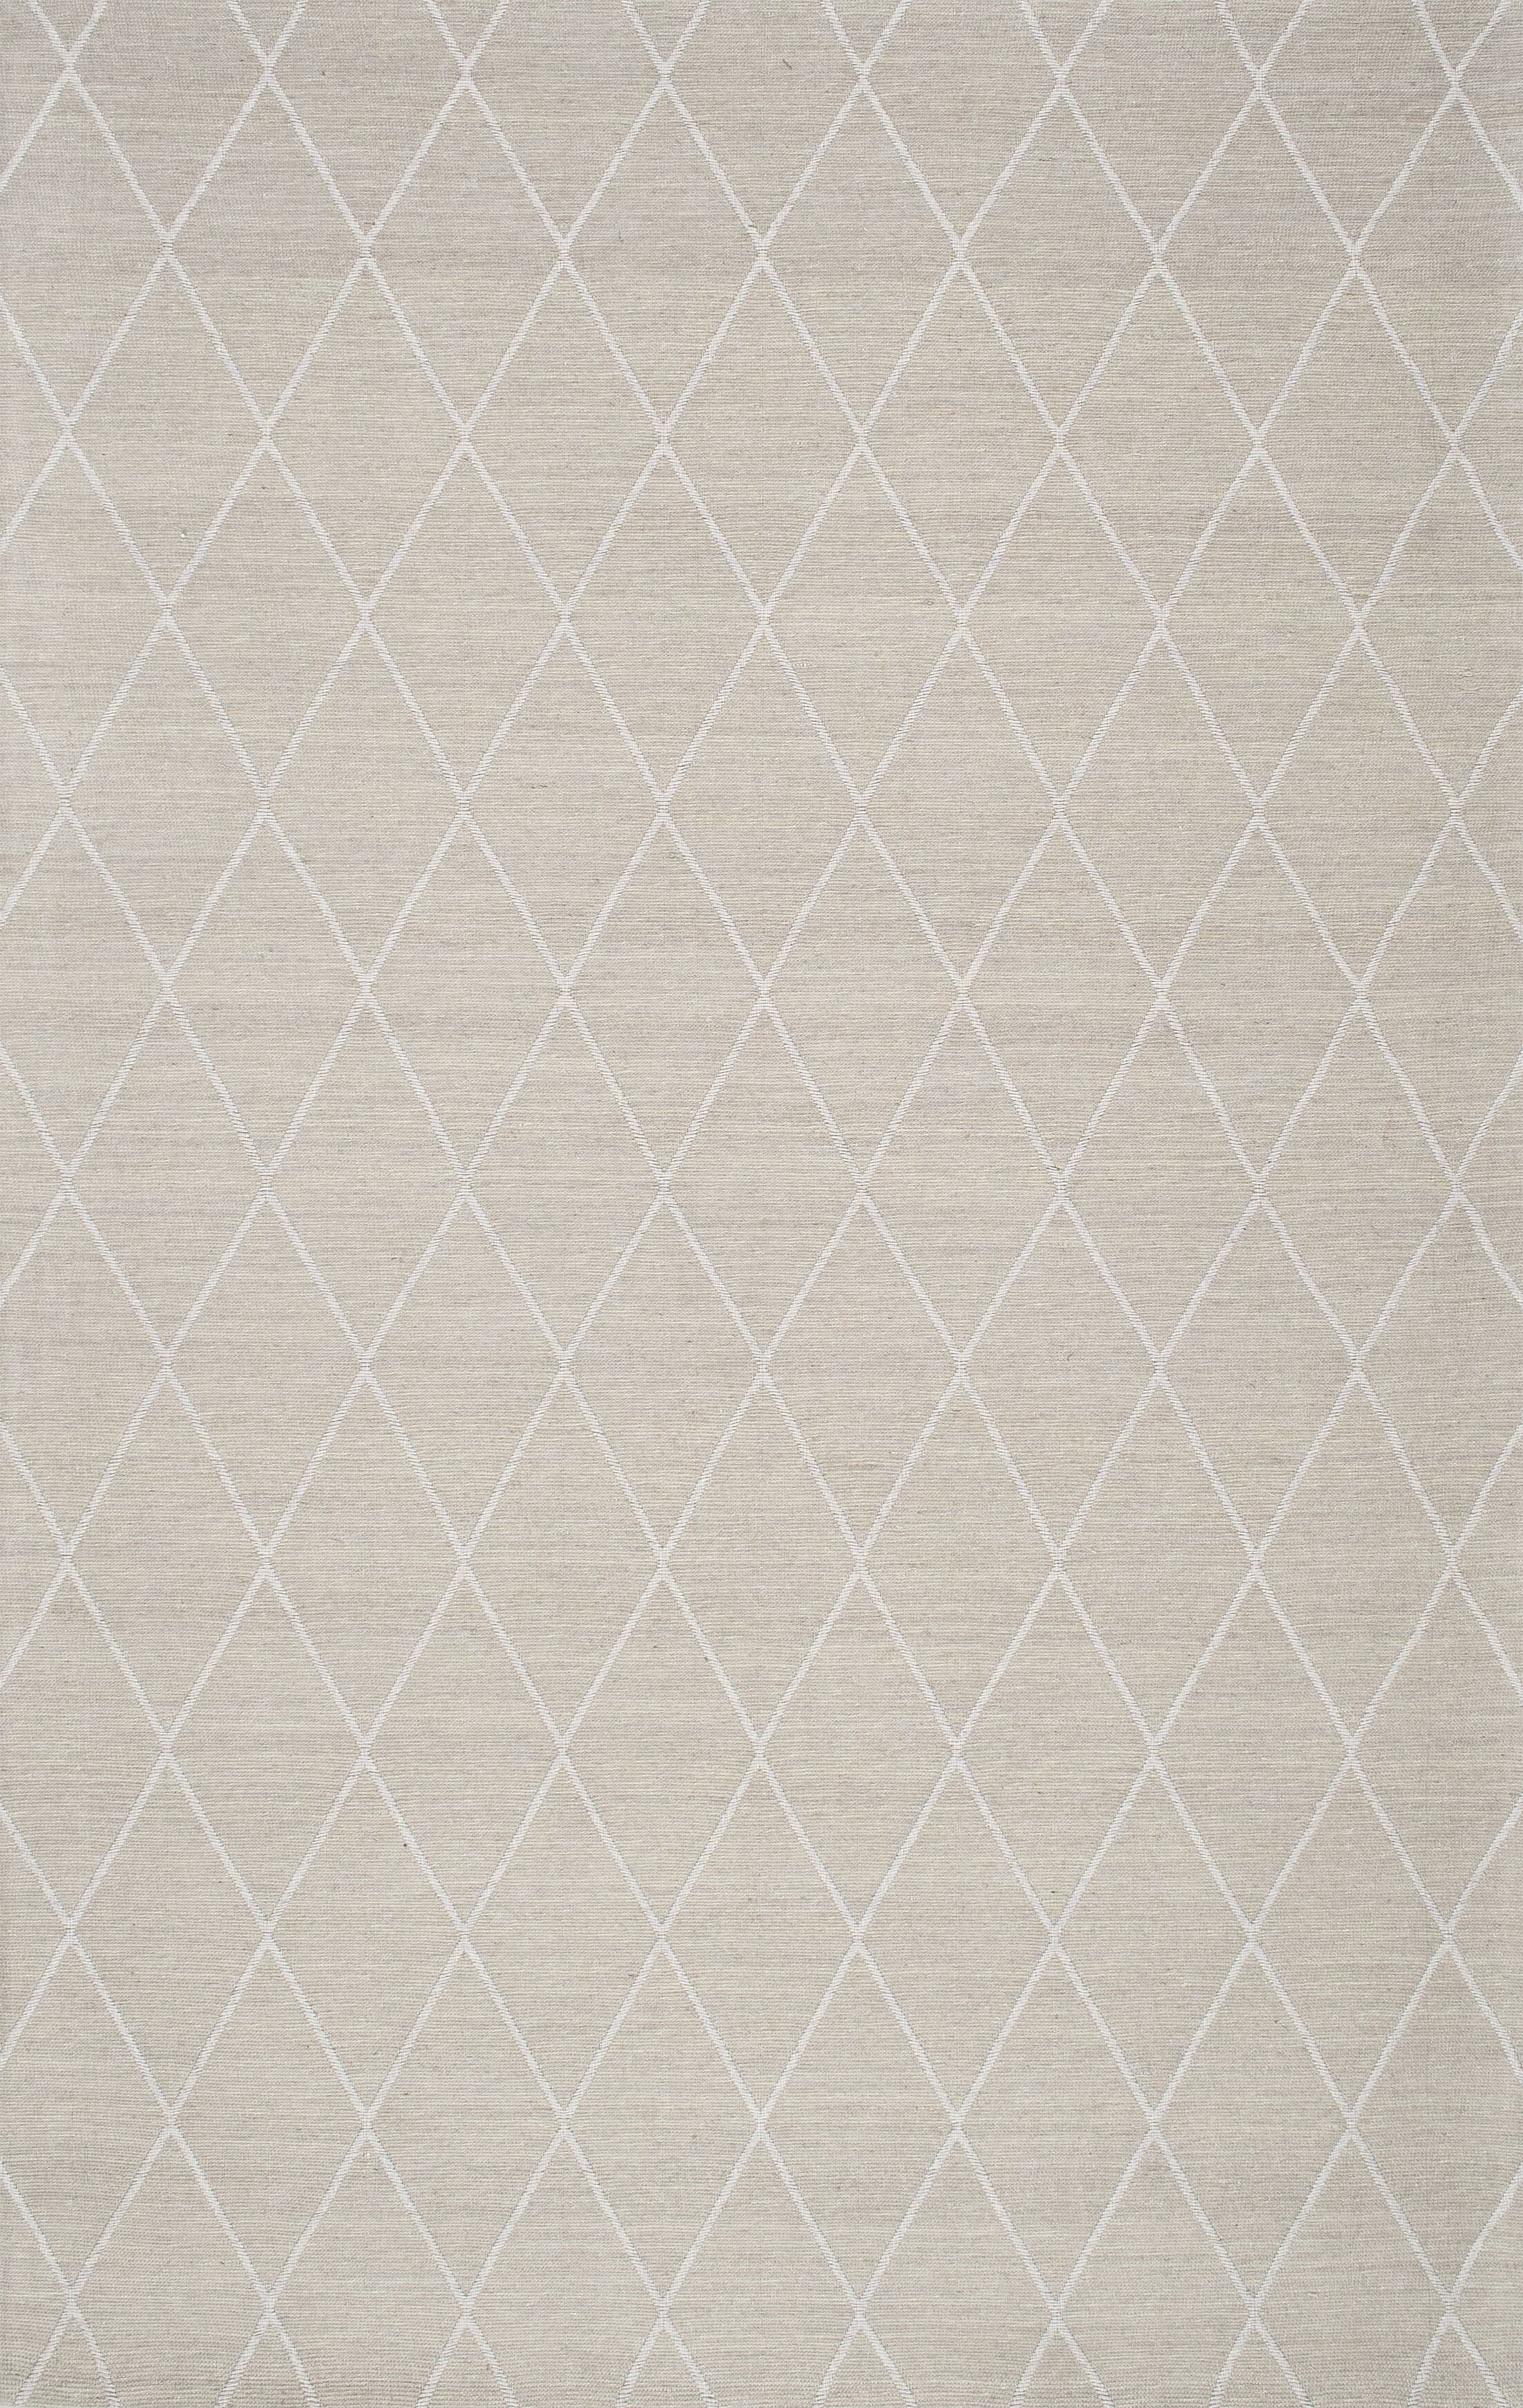 Bossier City Beige Area Rug Rug Size: Rectangle 5' x 8'